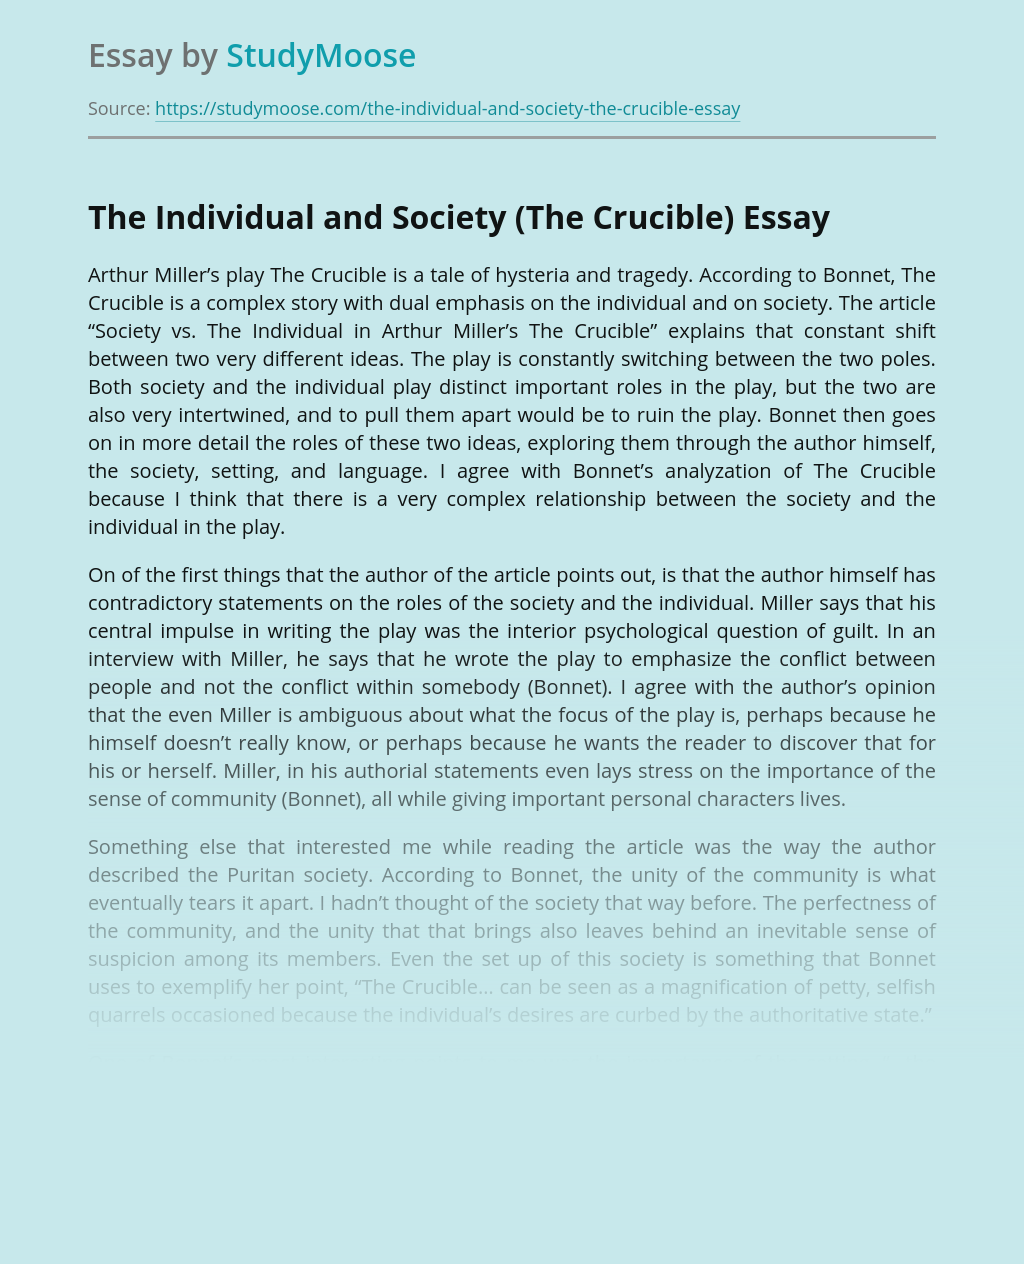 The Individual and Society (The Crucible)